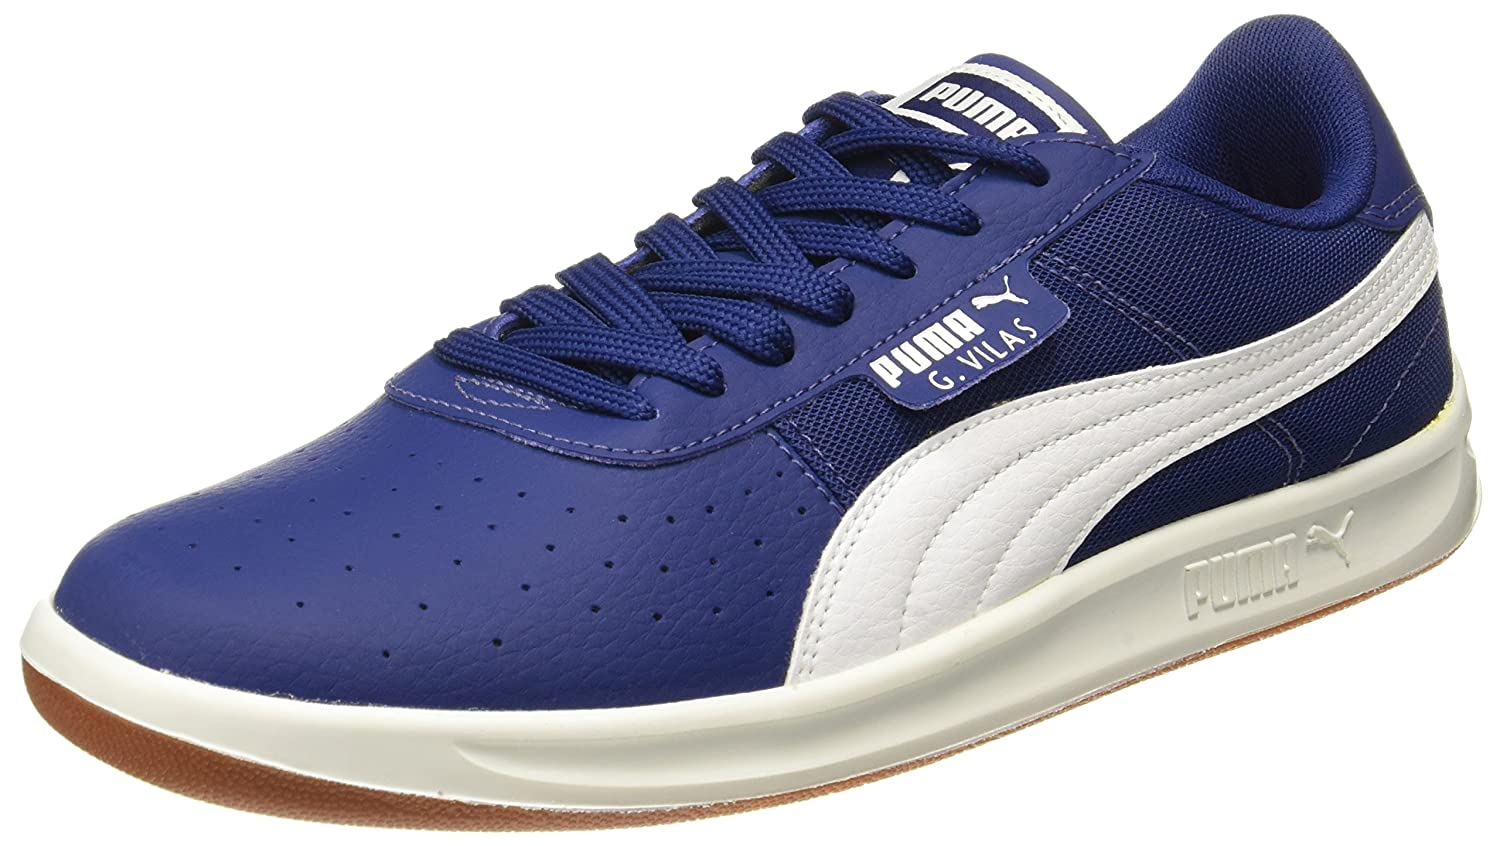 factory price a4c6f 1bca6 Puma Men s G Vilas Sneakers  Buy Online at Low Prices in India - Amazon.in